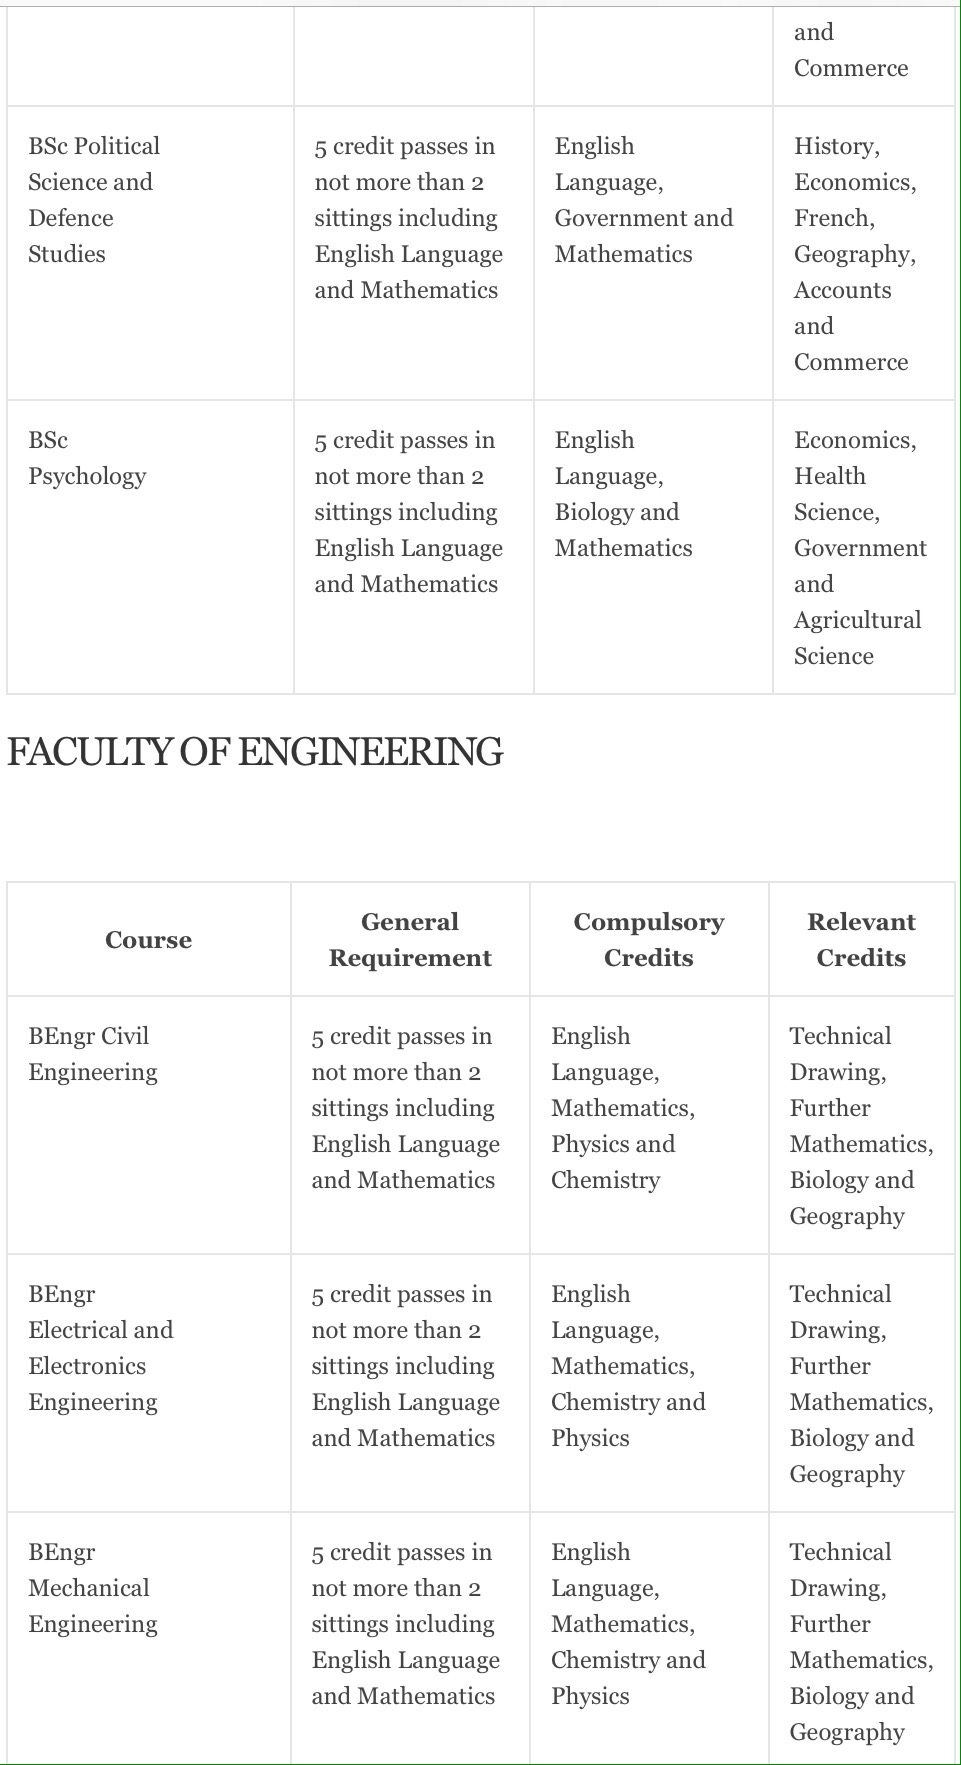 COURSE REQUIREMENTS FOR FACULTY ENGINEERING AND SOCIAL SCIENCES